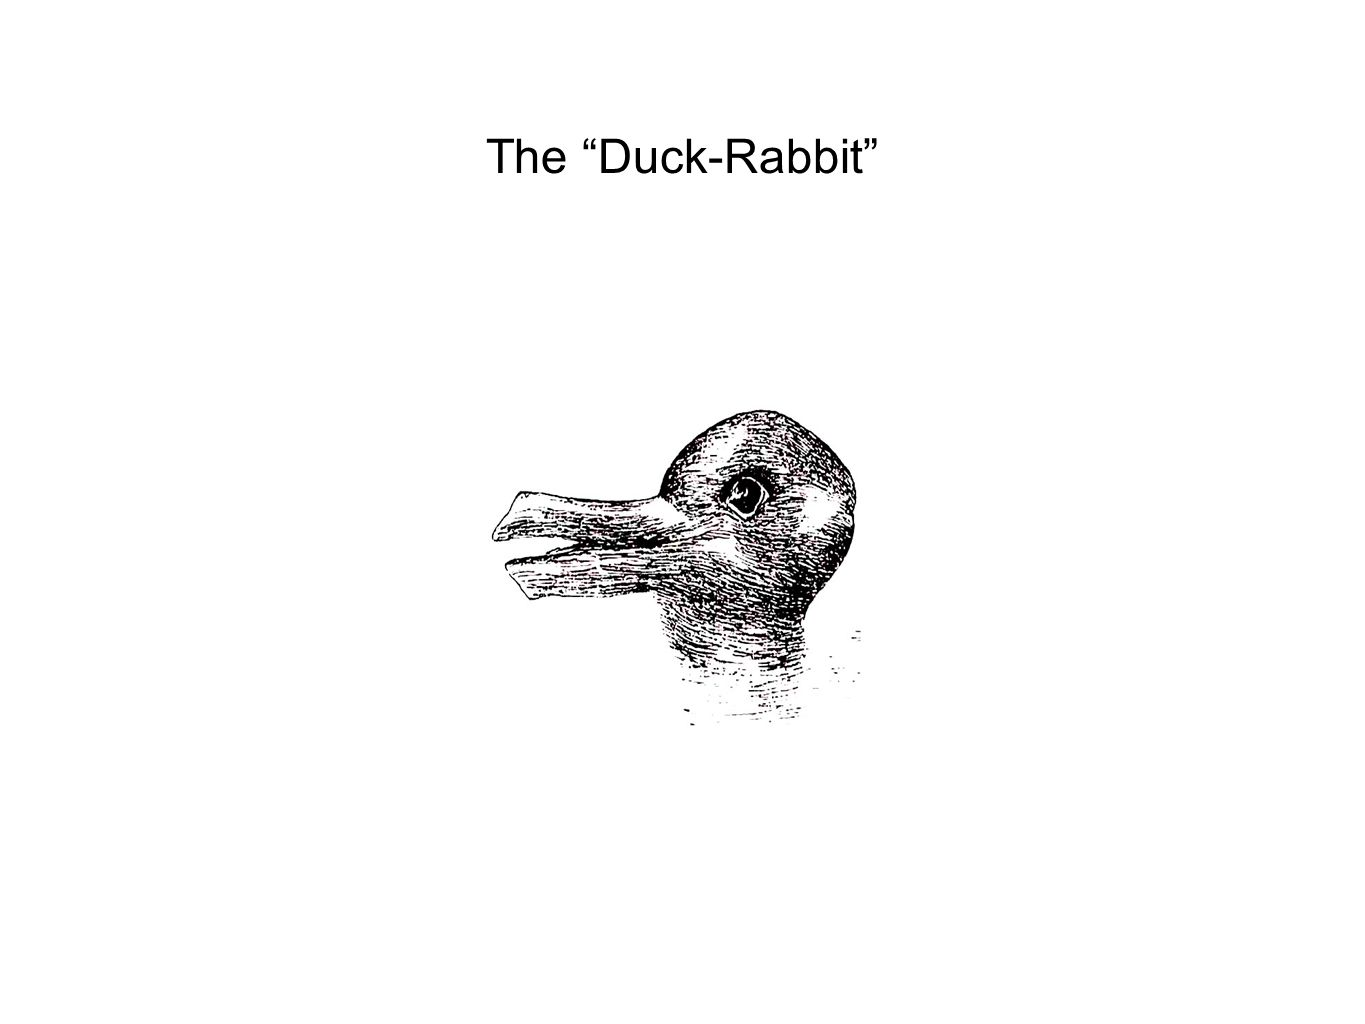 The Duck-Rabbit